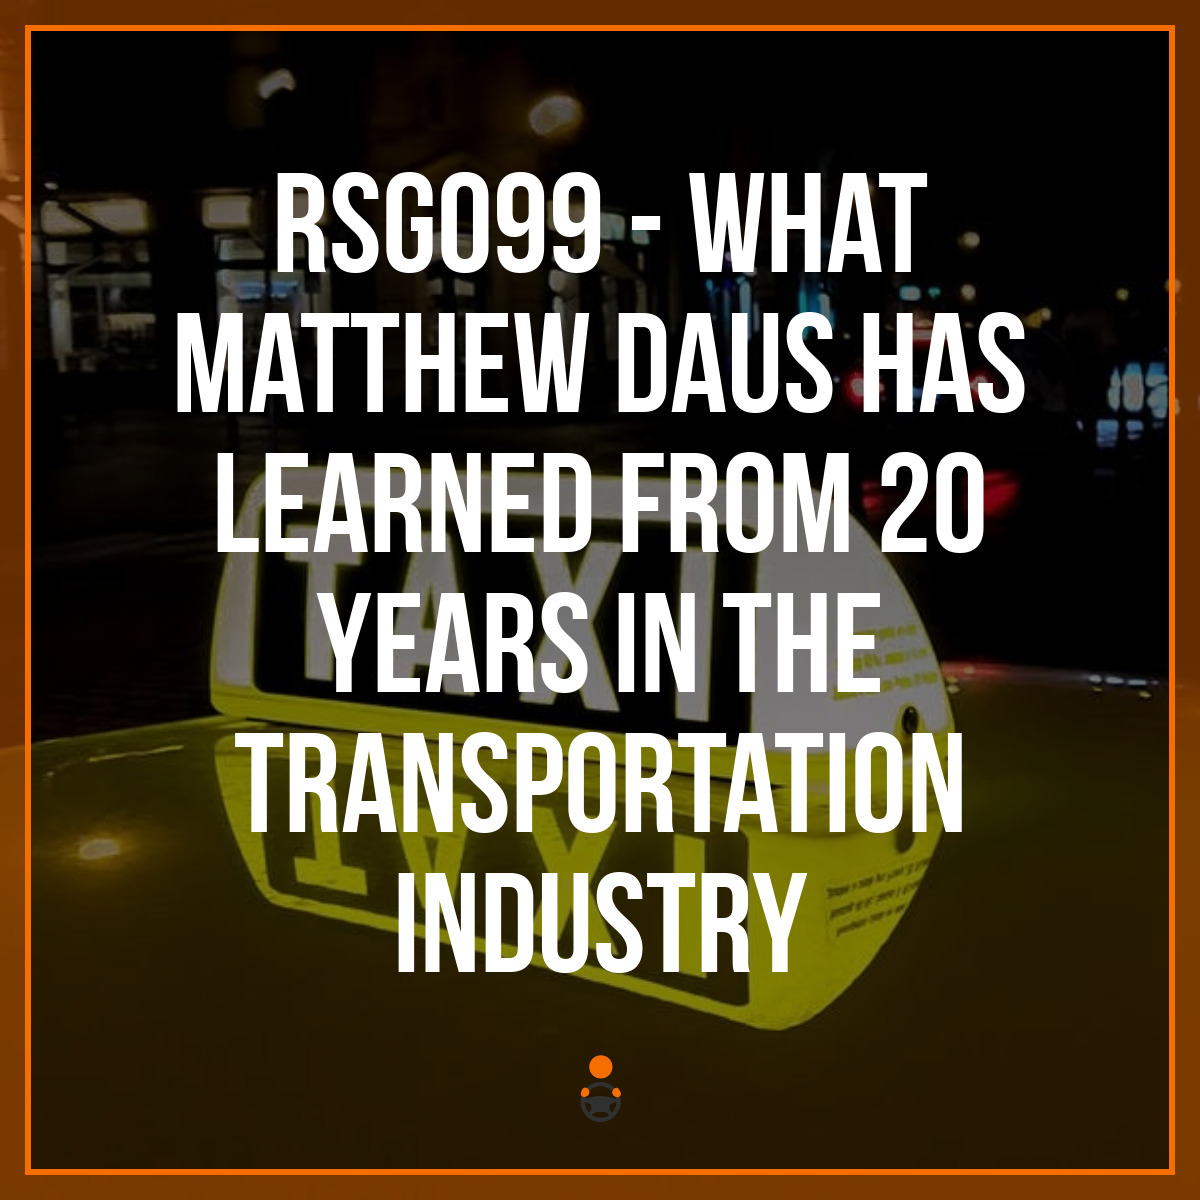 RSG099 – What Matthew Daus Has Learned From 20 Years in the Transportation Industry